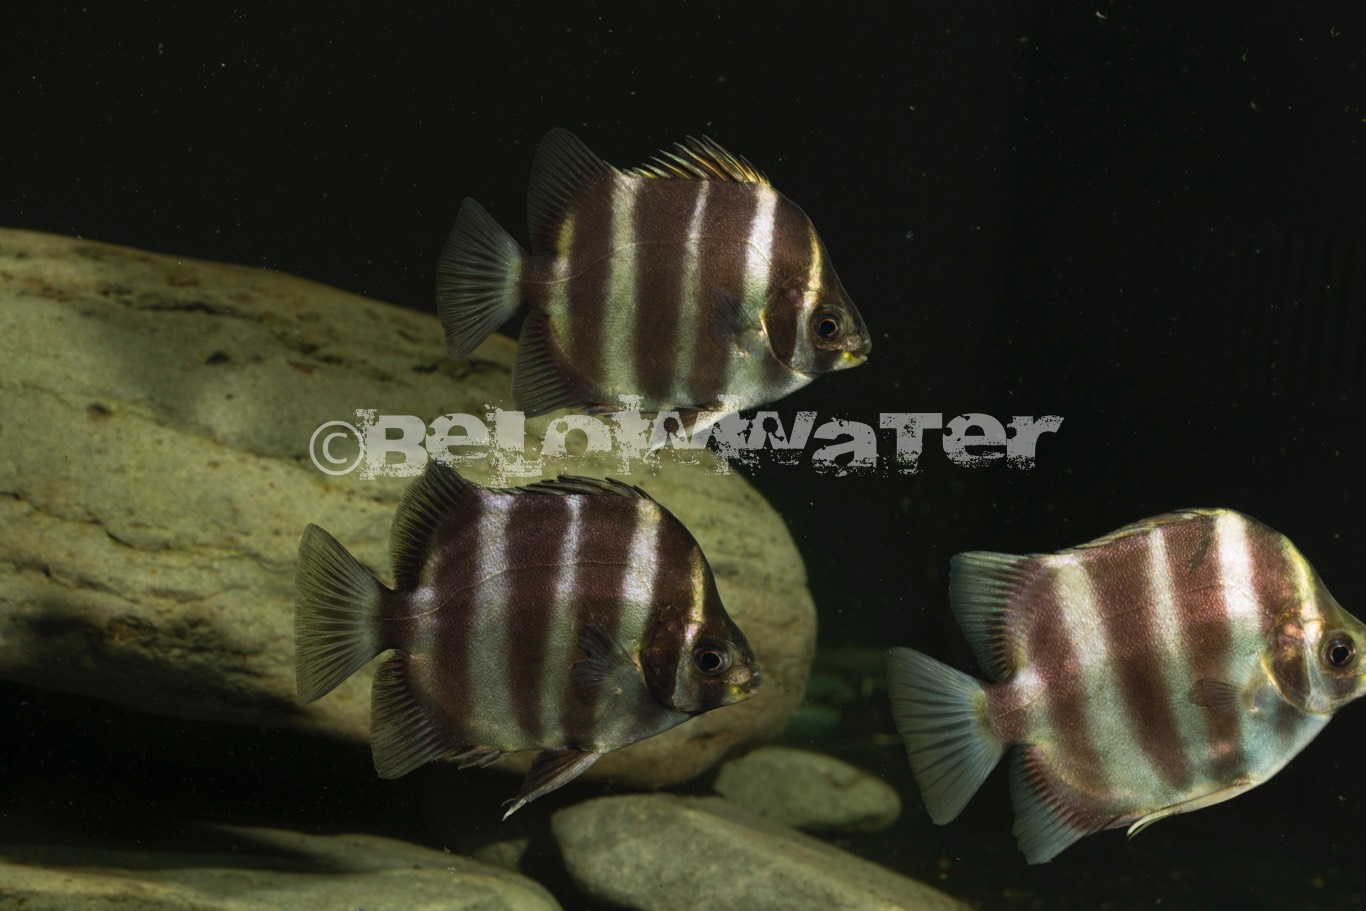 Scatophagus tetracanthus